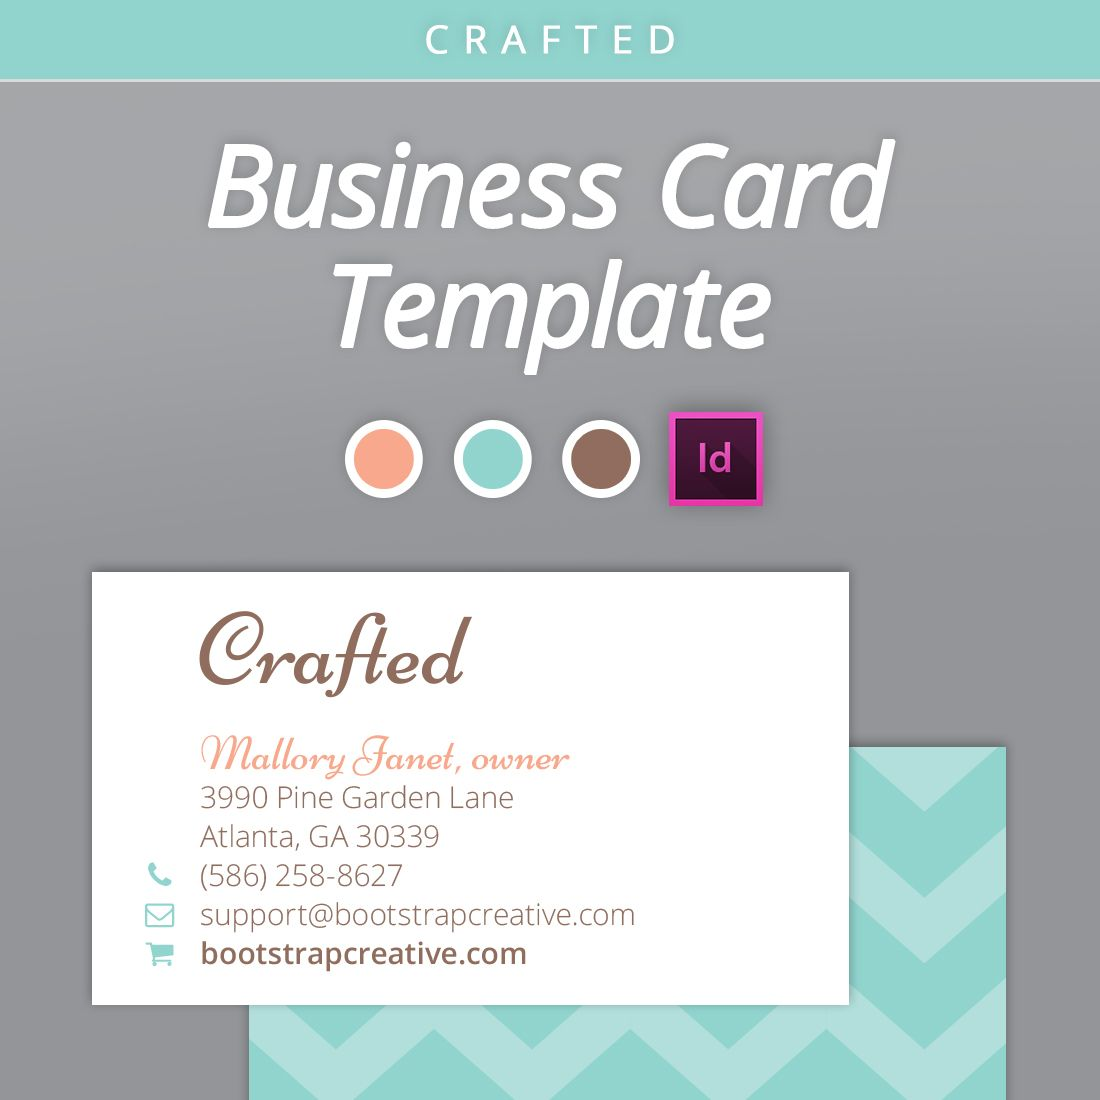 Business card handmade shop google pretraivanje graphic design cute business card template indesign by bootstrapcreative on etsy cheaphphosting Gallery